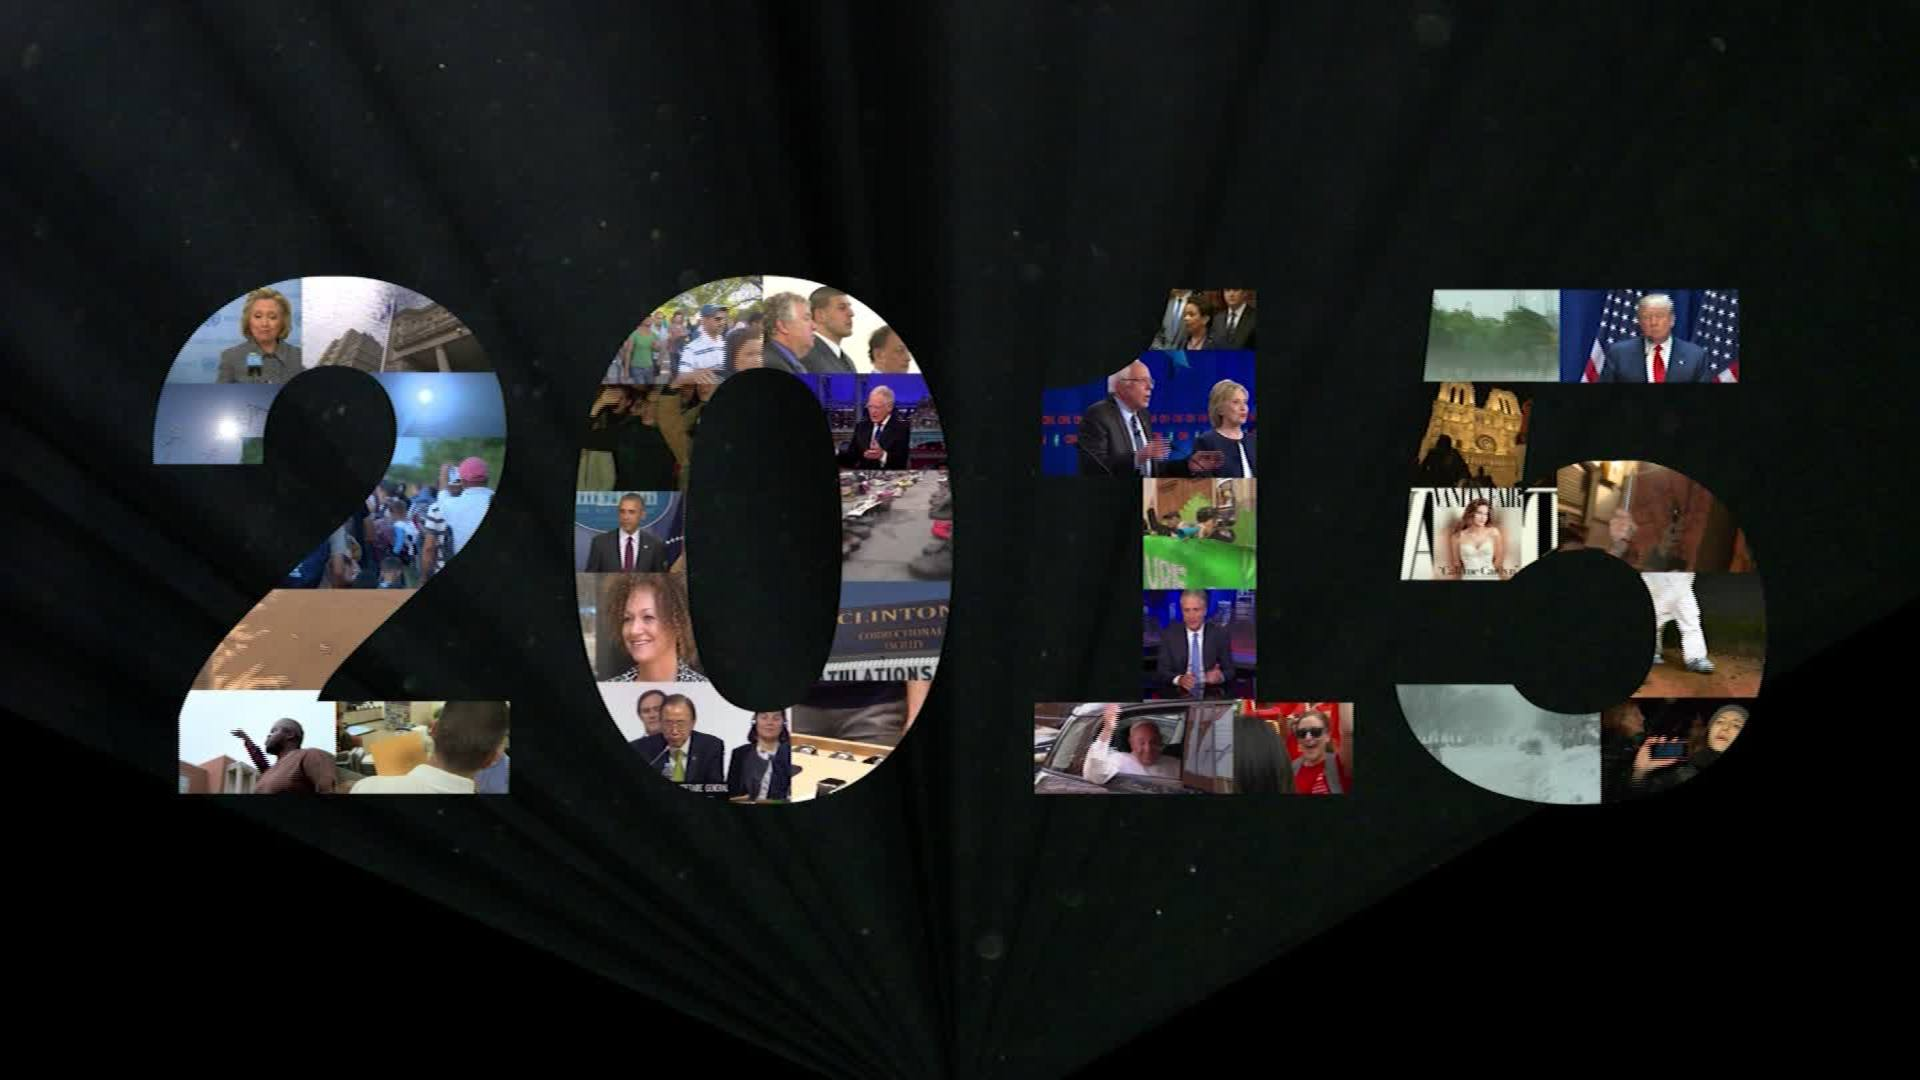 A look back at 2015 - CNN Video